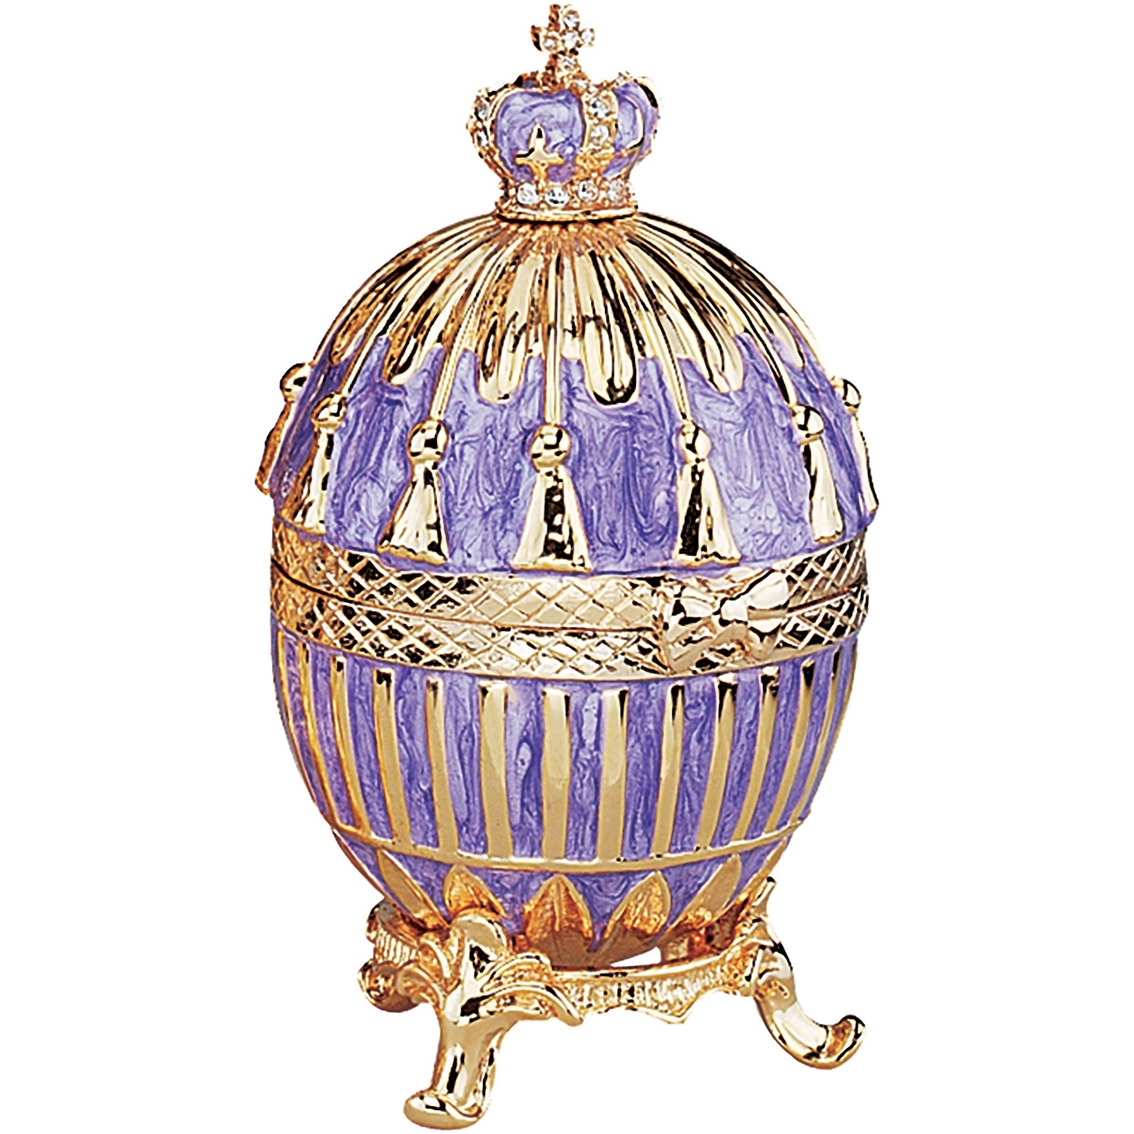 Decorative Objects For Home: Design Toscano The Regal Purple Collection Romanov Style